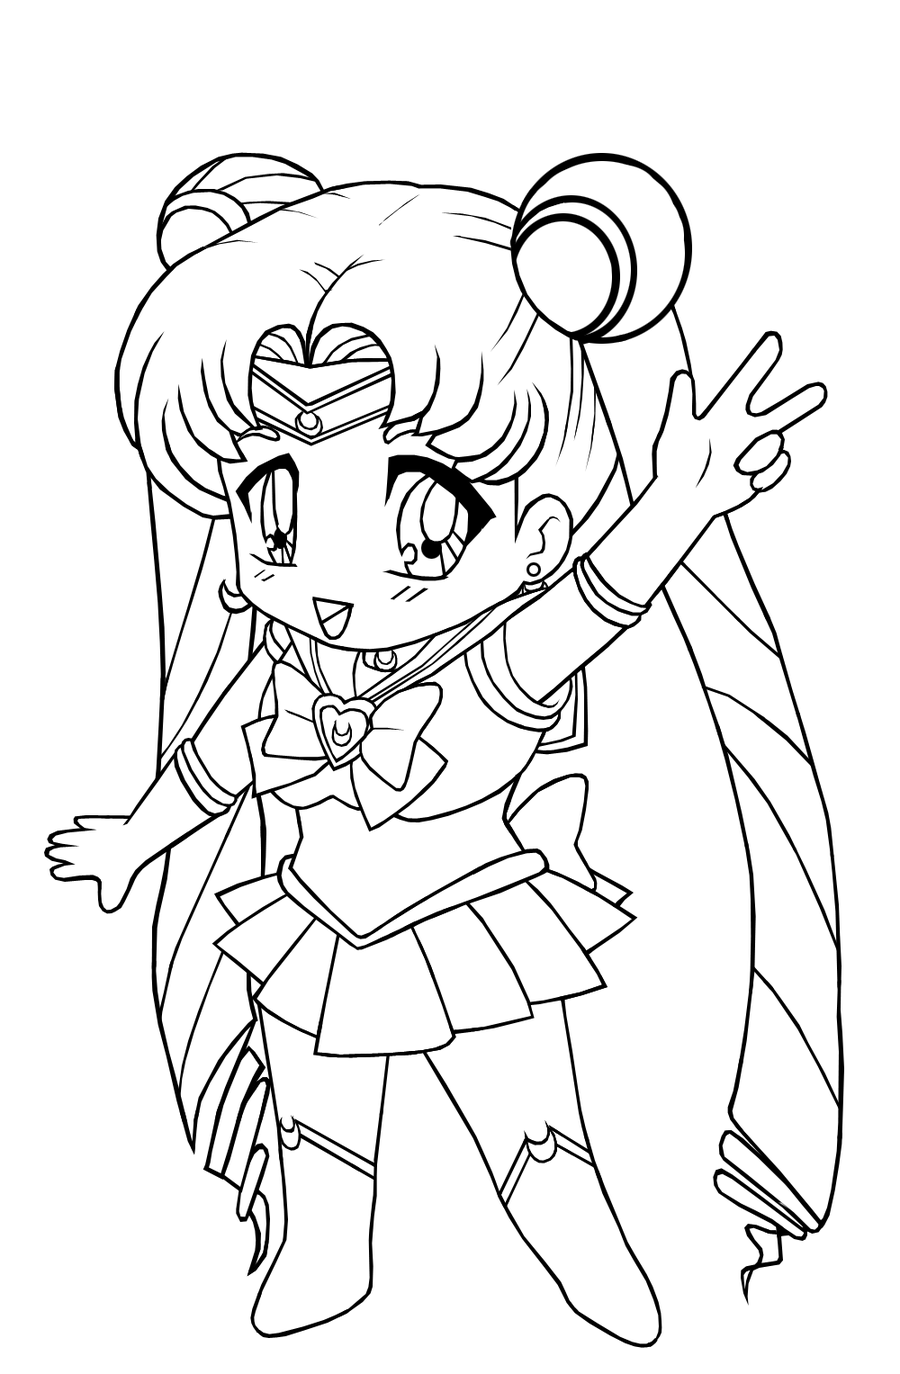 sailor moon color pages - silor moon coloring pagrs minister coloring